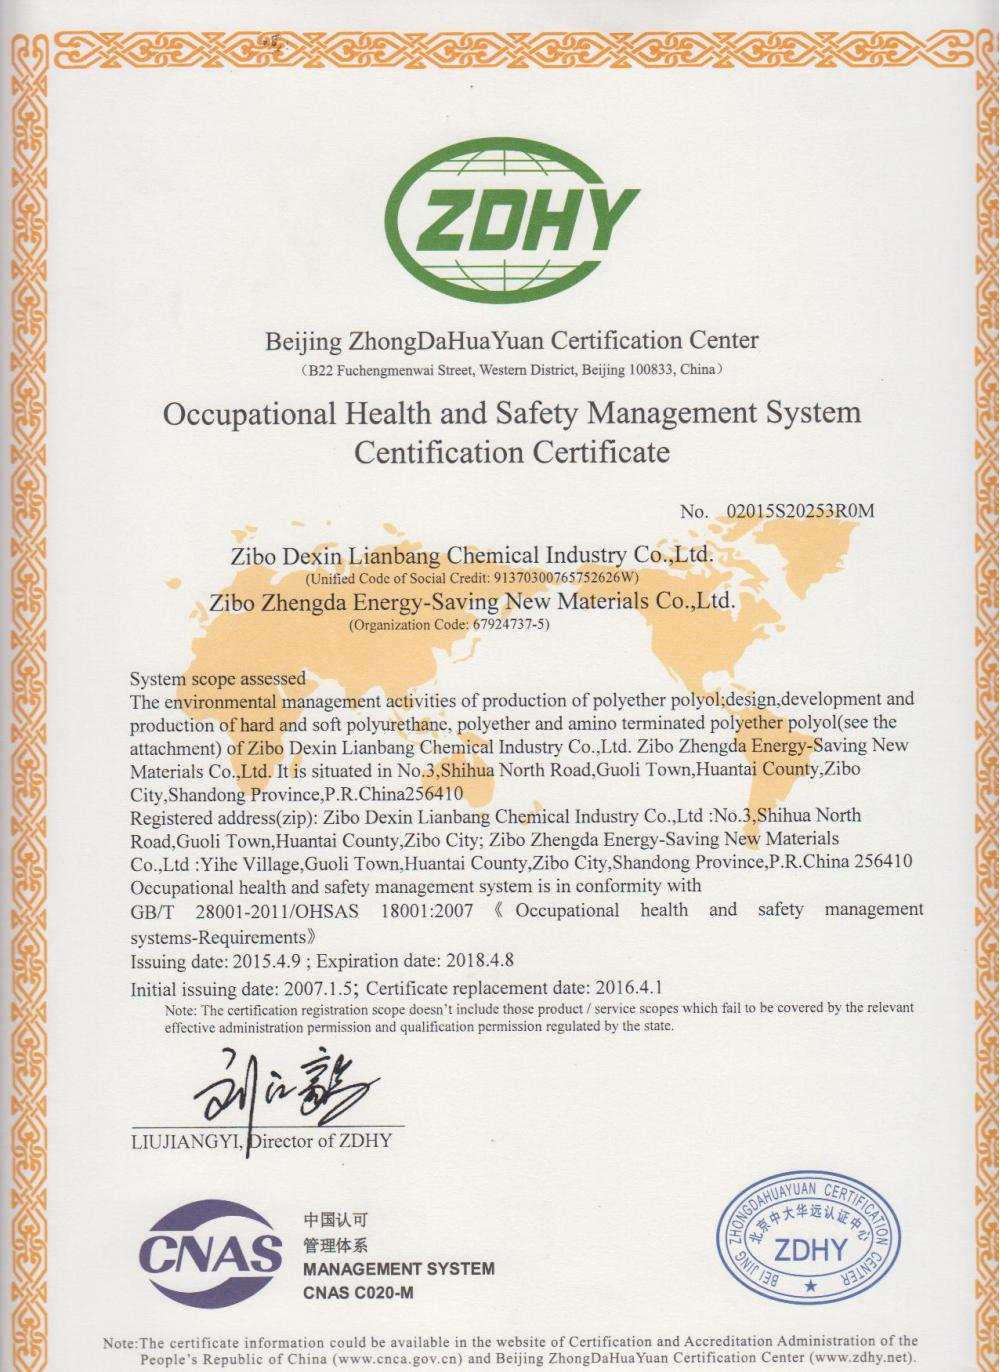 Occupational Health and Safety Management System Certification Certificate